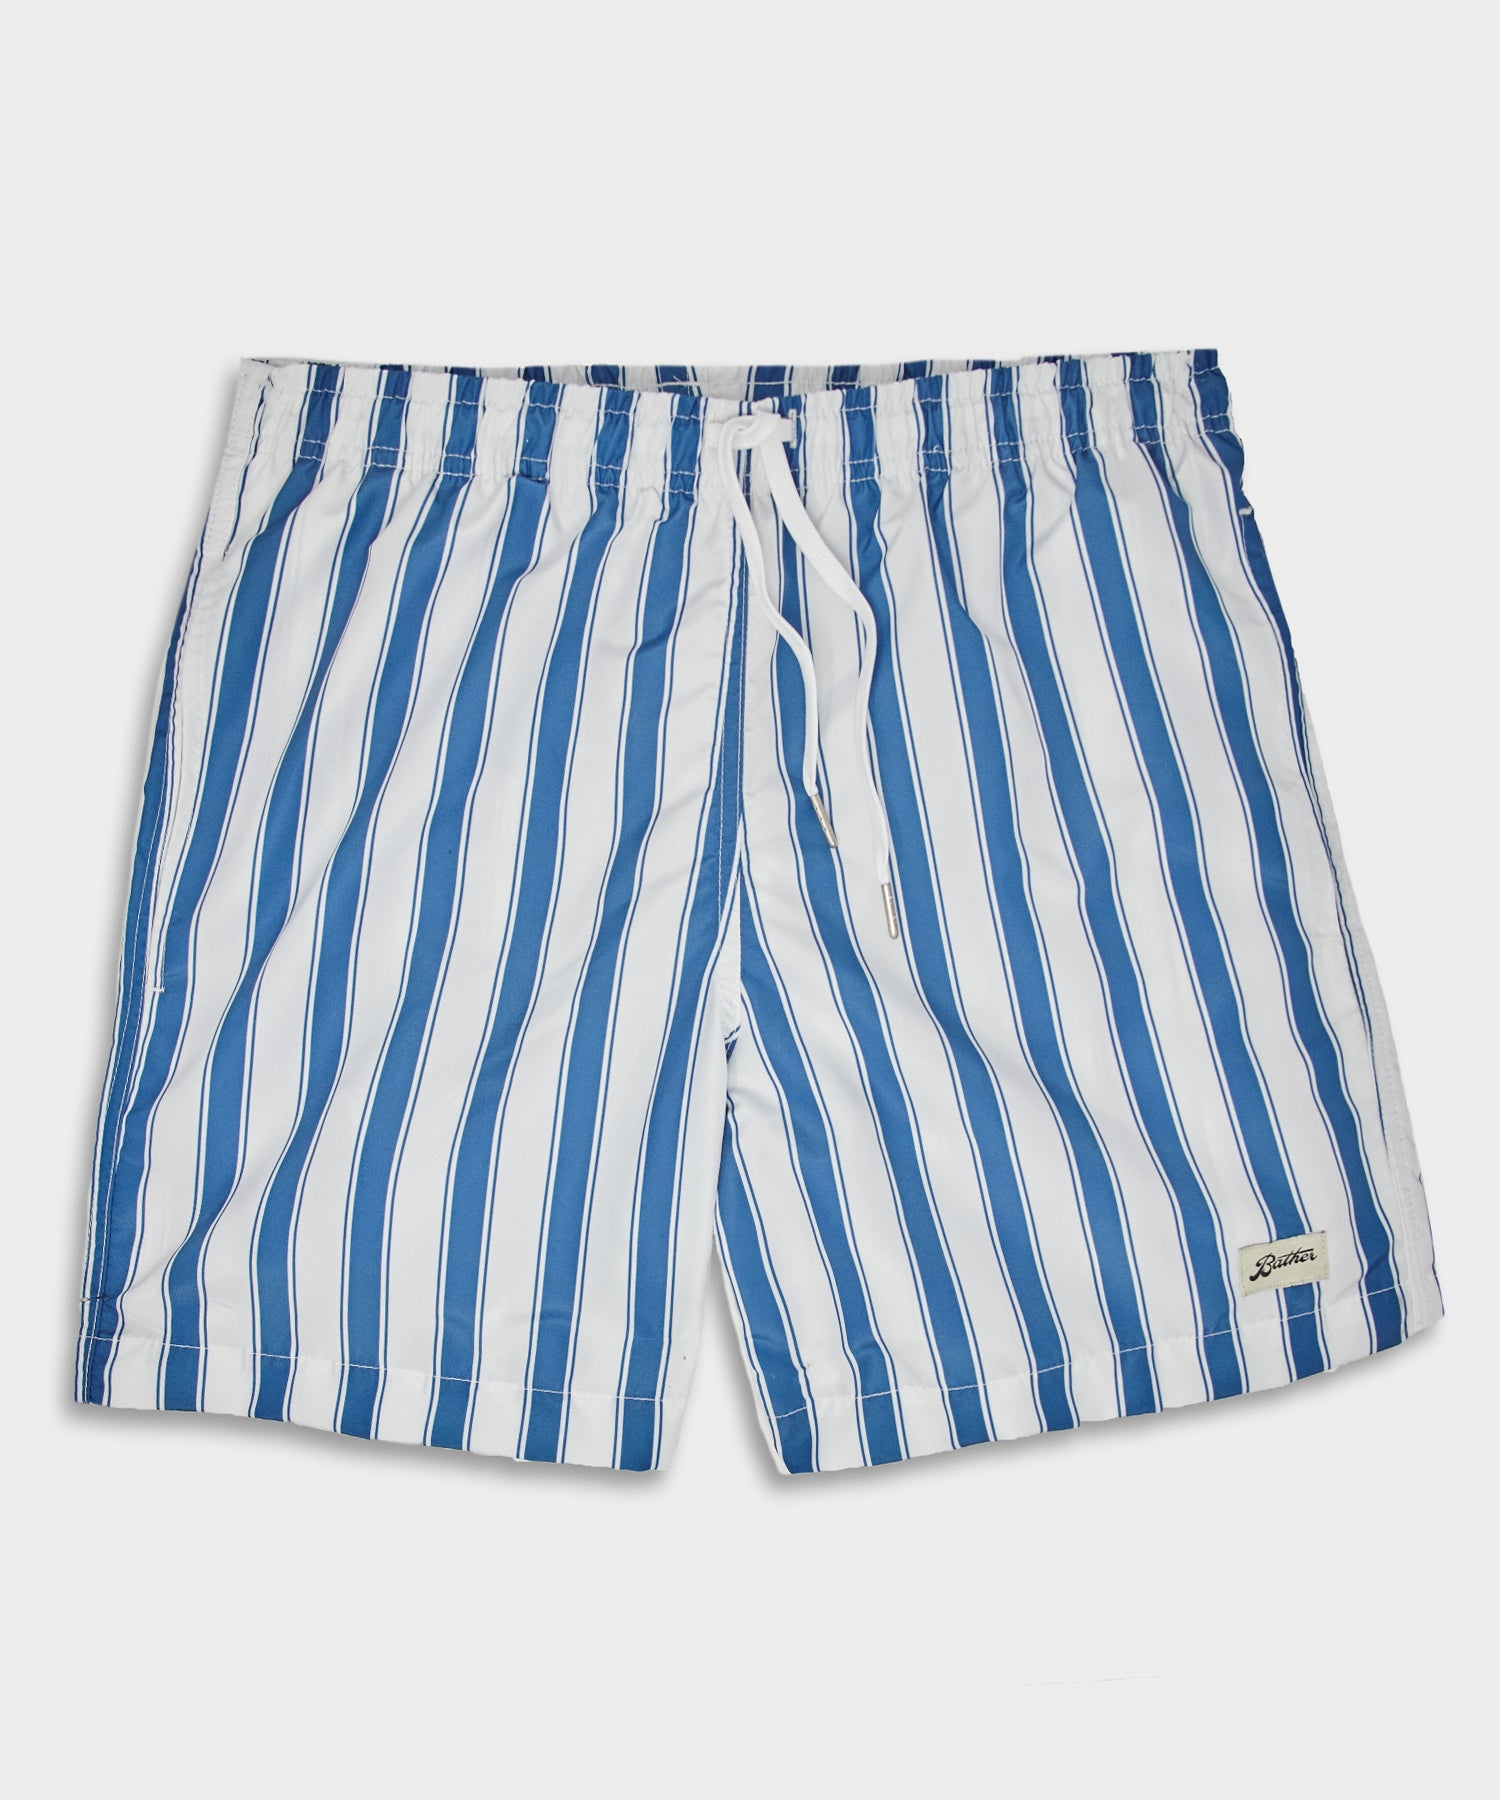 Bather Blue Stripe Swim Trunk